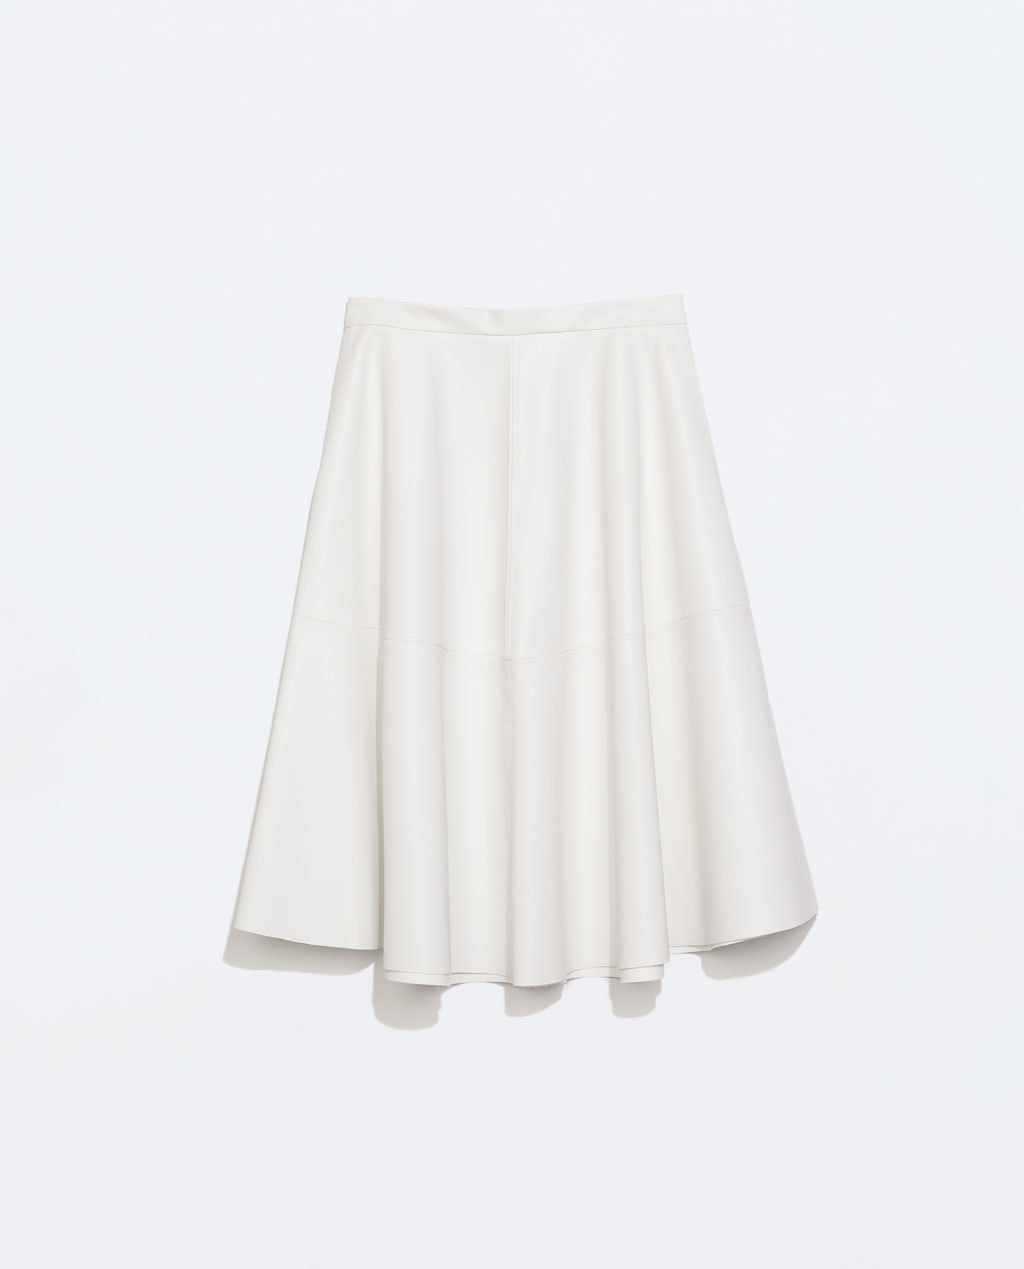 Faux Leather Flared Skirt - length: below the knee; pattern: plain; style: full/prom skirt; fit: loose/voluminous; waist: high rise; predominant colour: white; occasions: evening, creative work; hip detail: structured pleats at hip; texture group: leather; pattern type: fabric; fibres: pvc/polyurethene - 100%; season: s/s 2014